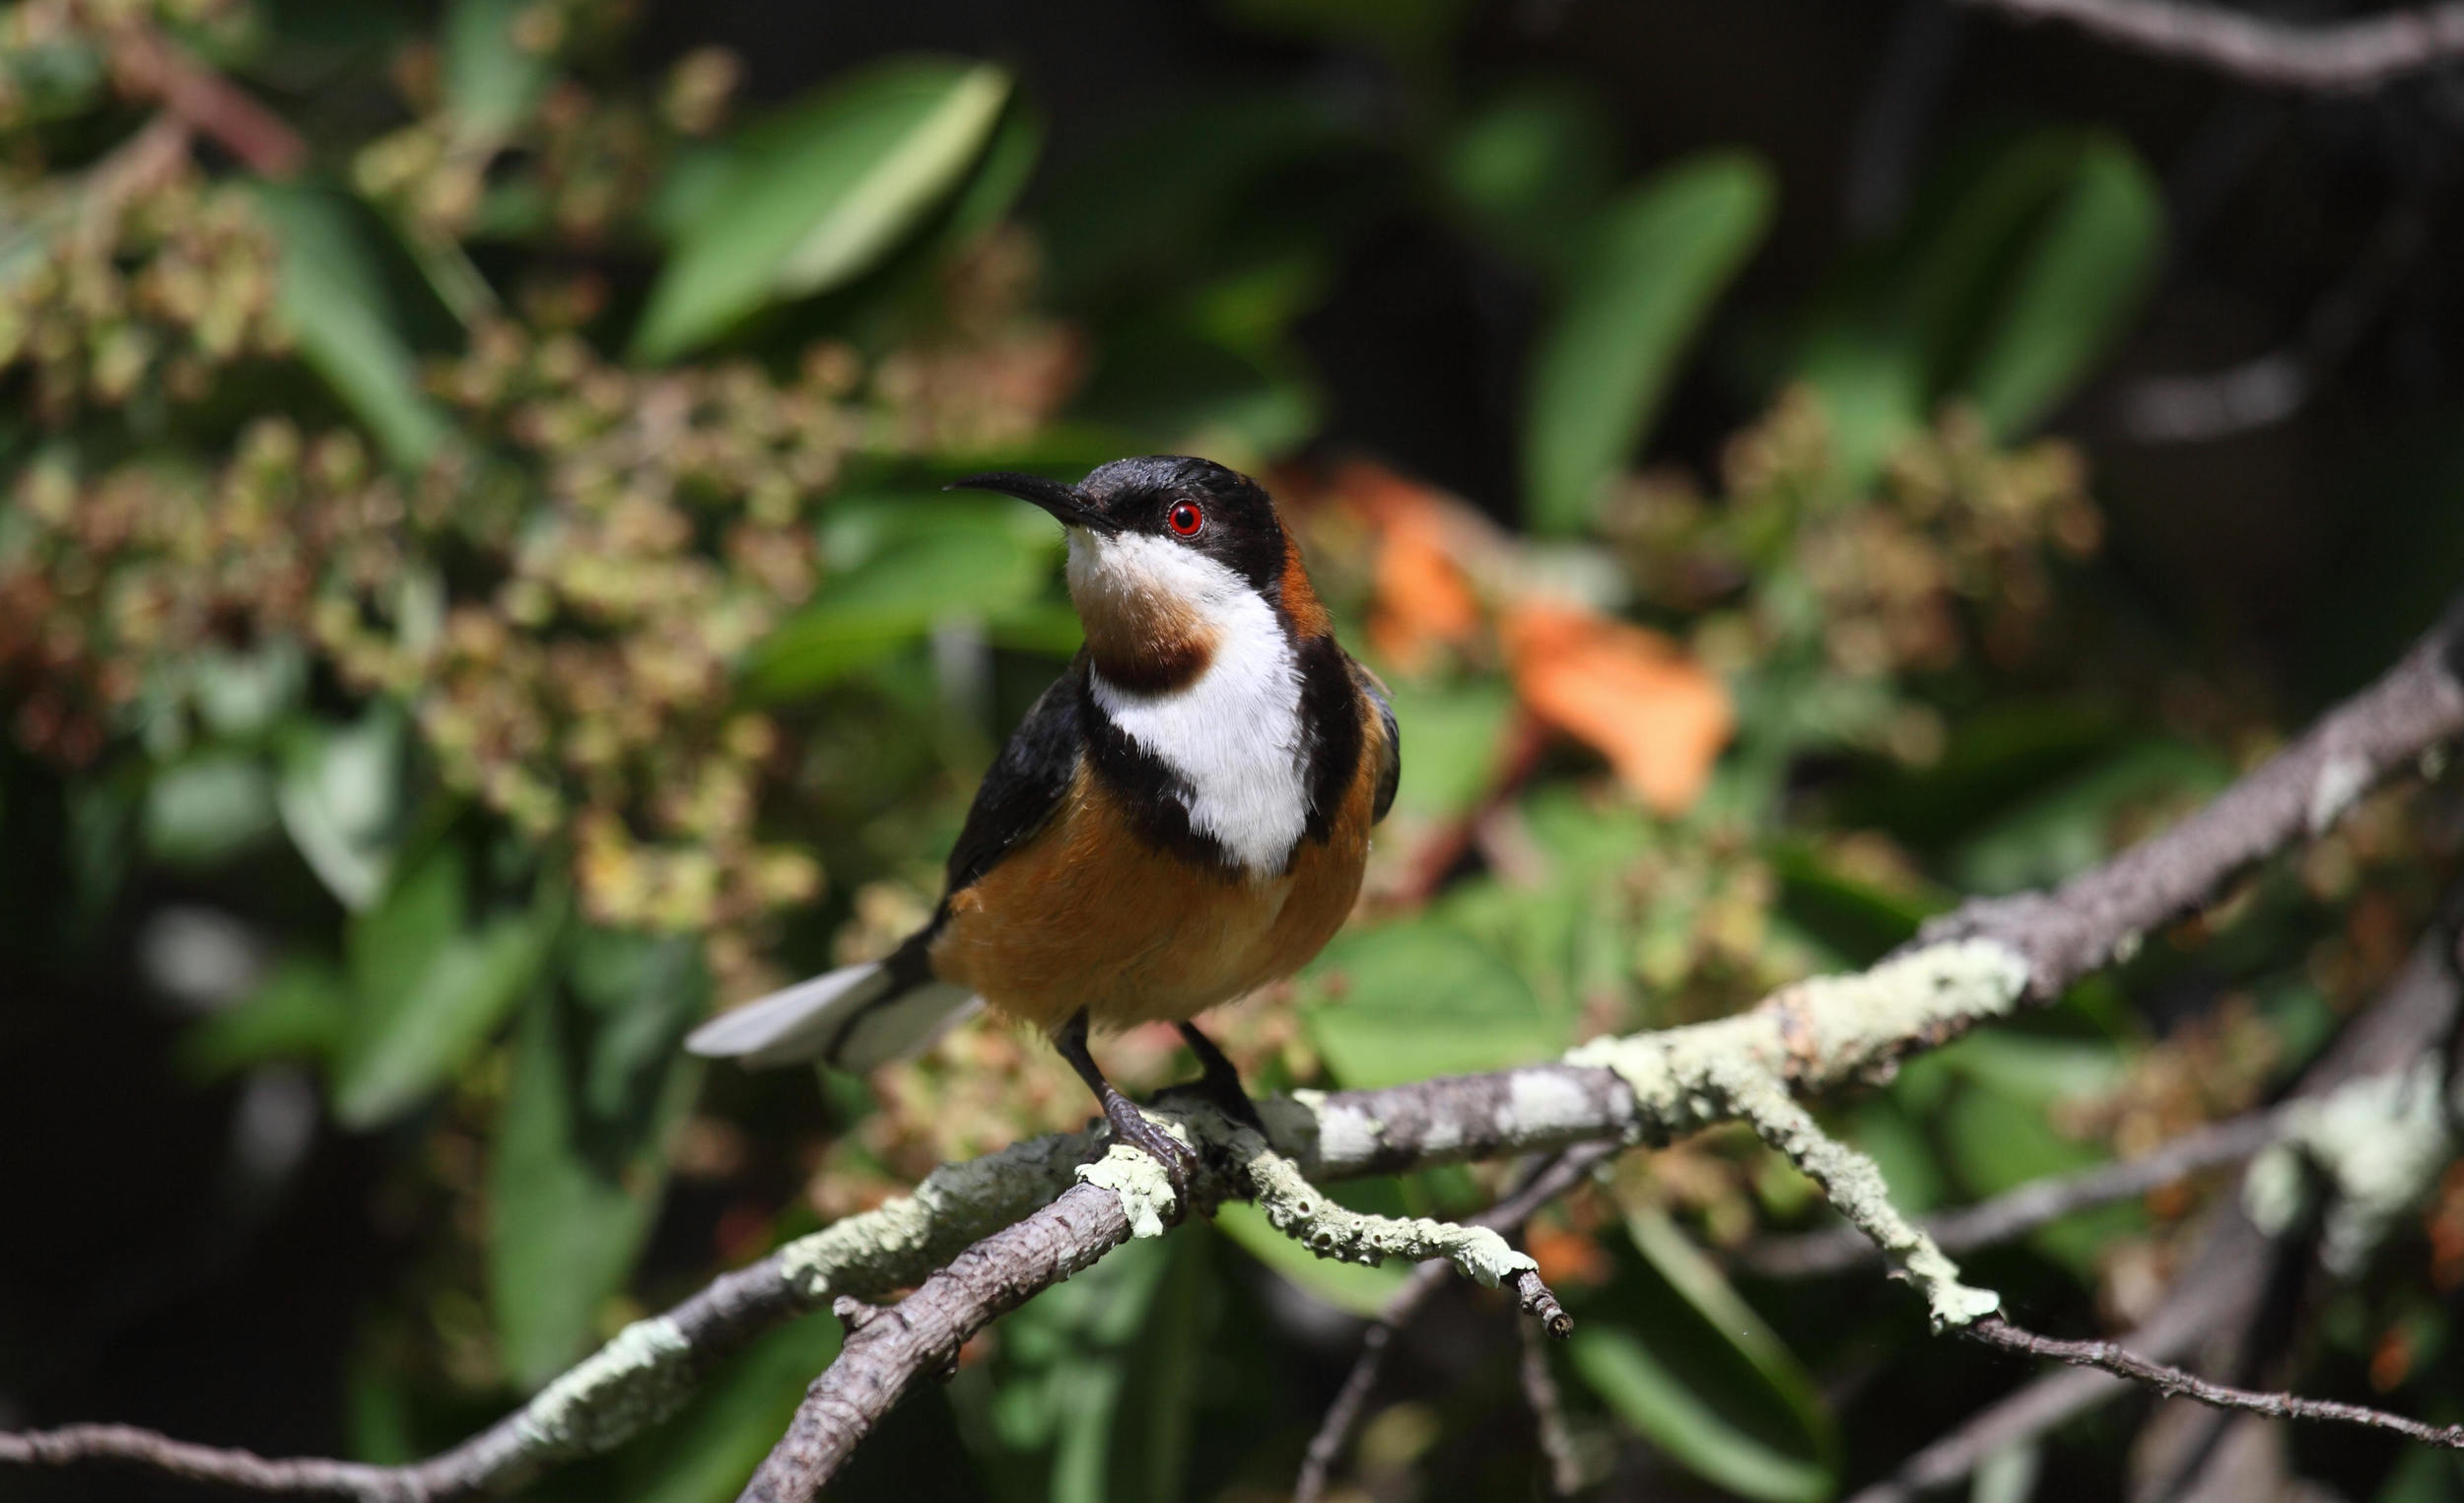 Eastern Spinebill - less colourful in real life but still an arresting bird